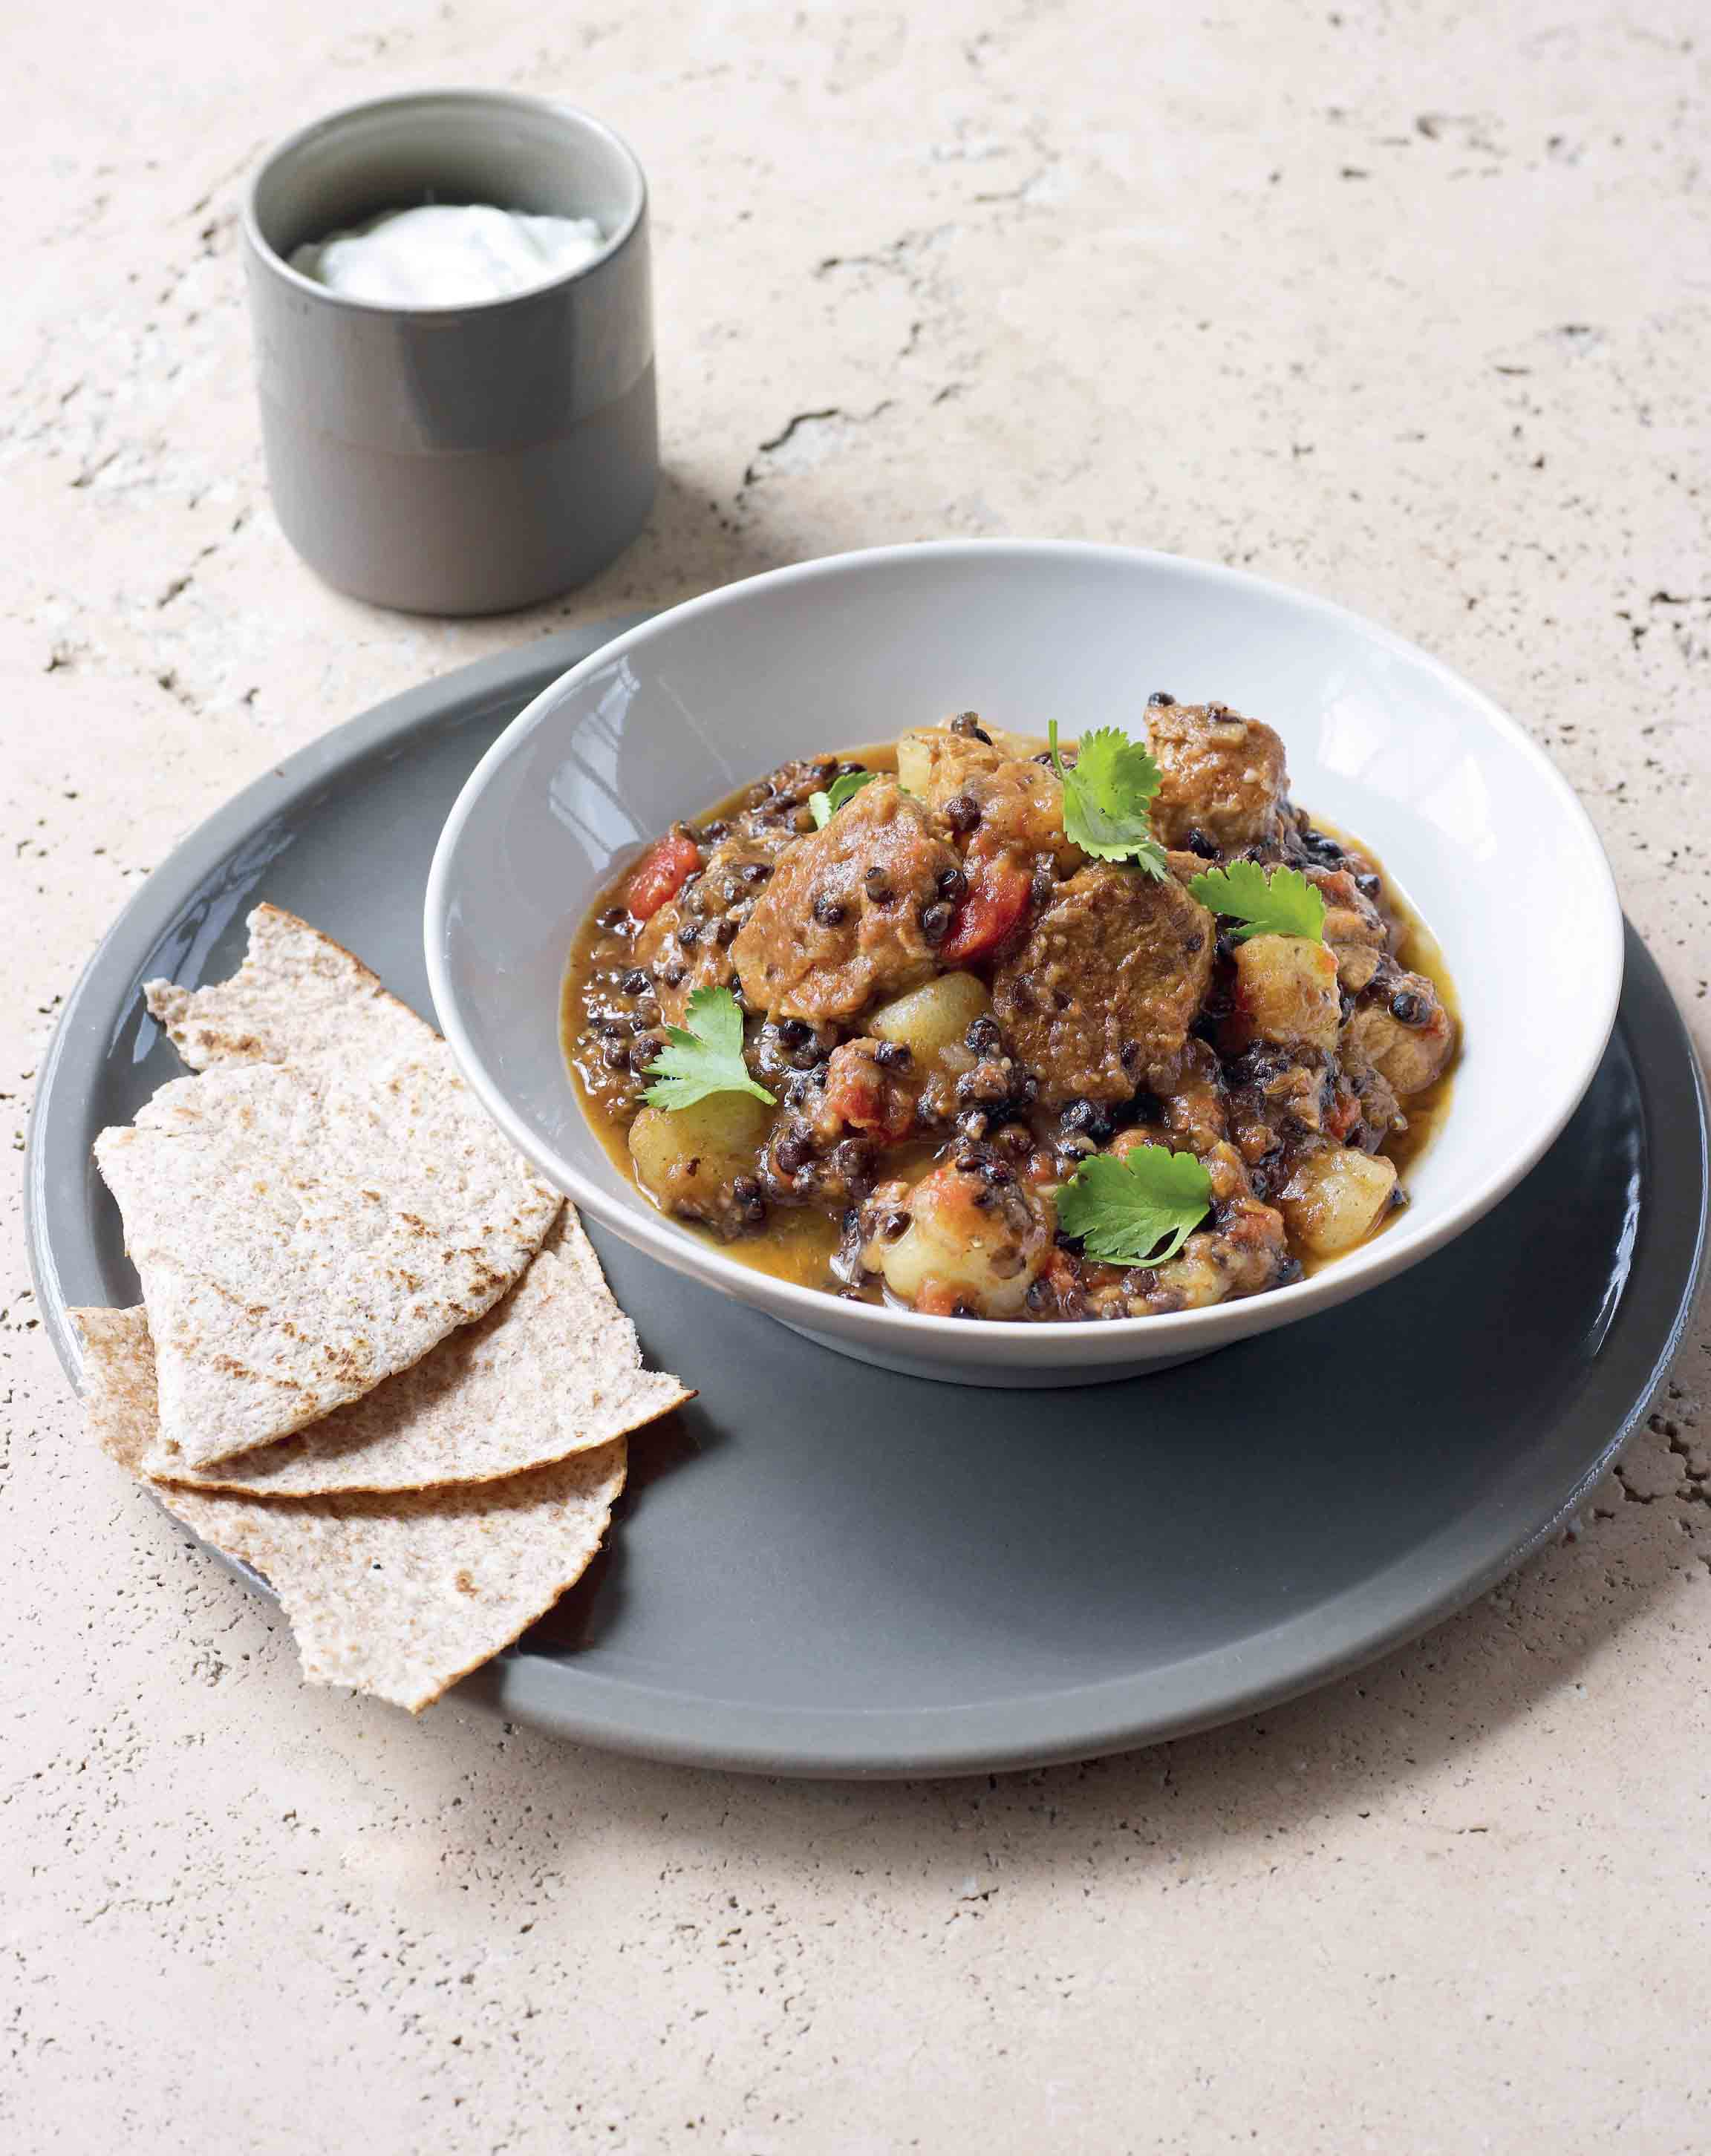 Lamb and lentil curry